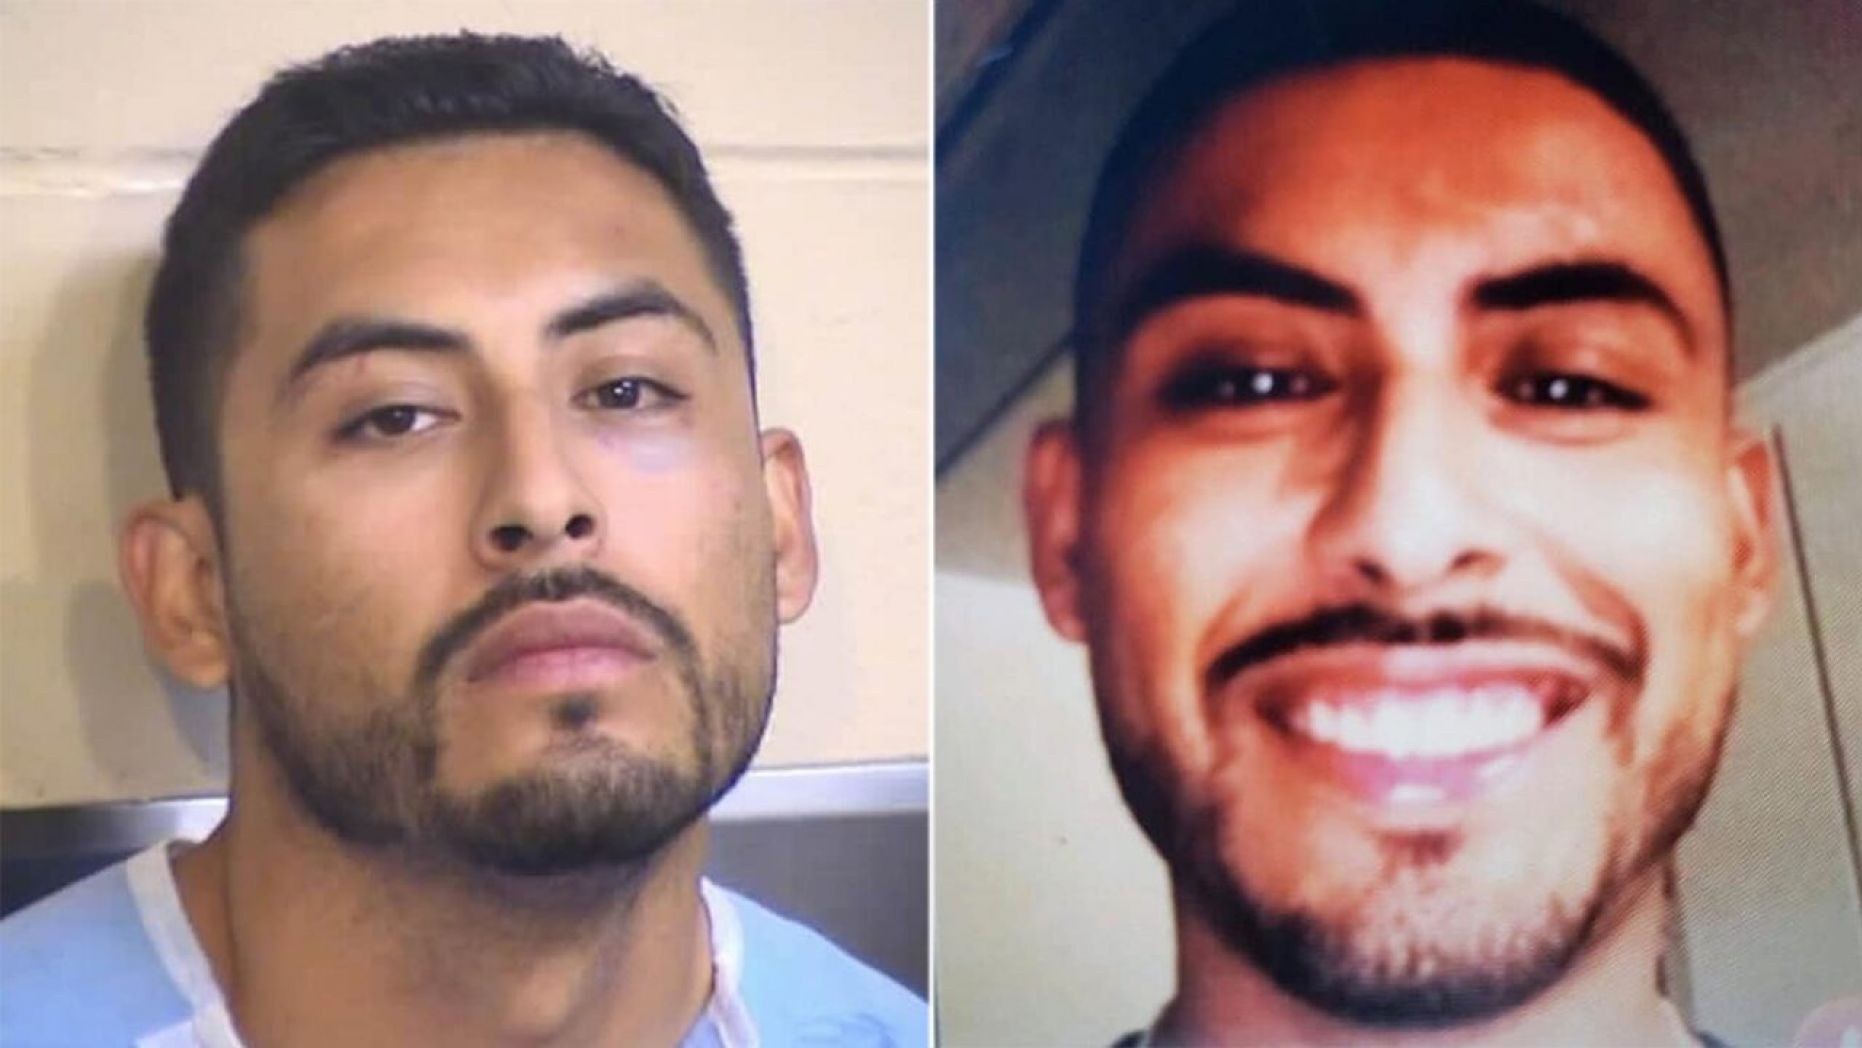 Fabian Ornelas, 30, in mugshot photo and in what detectives say is his Tinder profile photo.